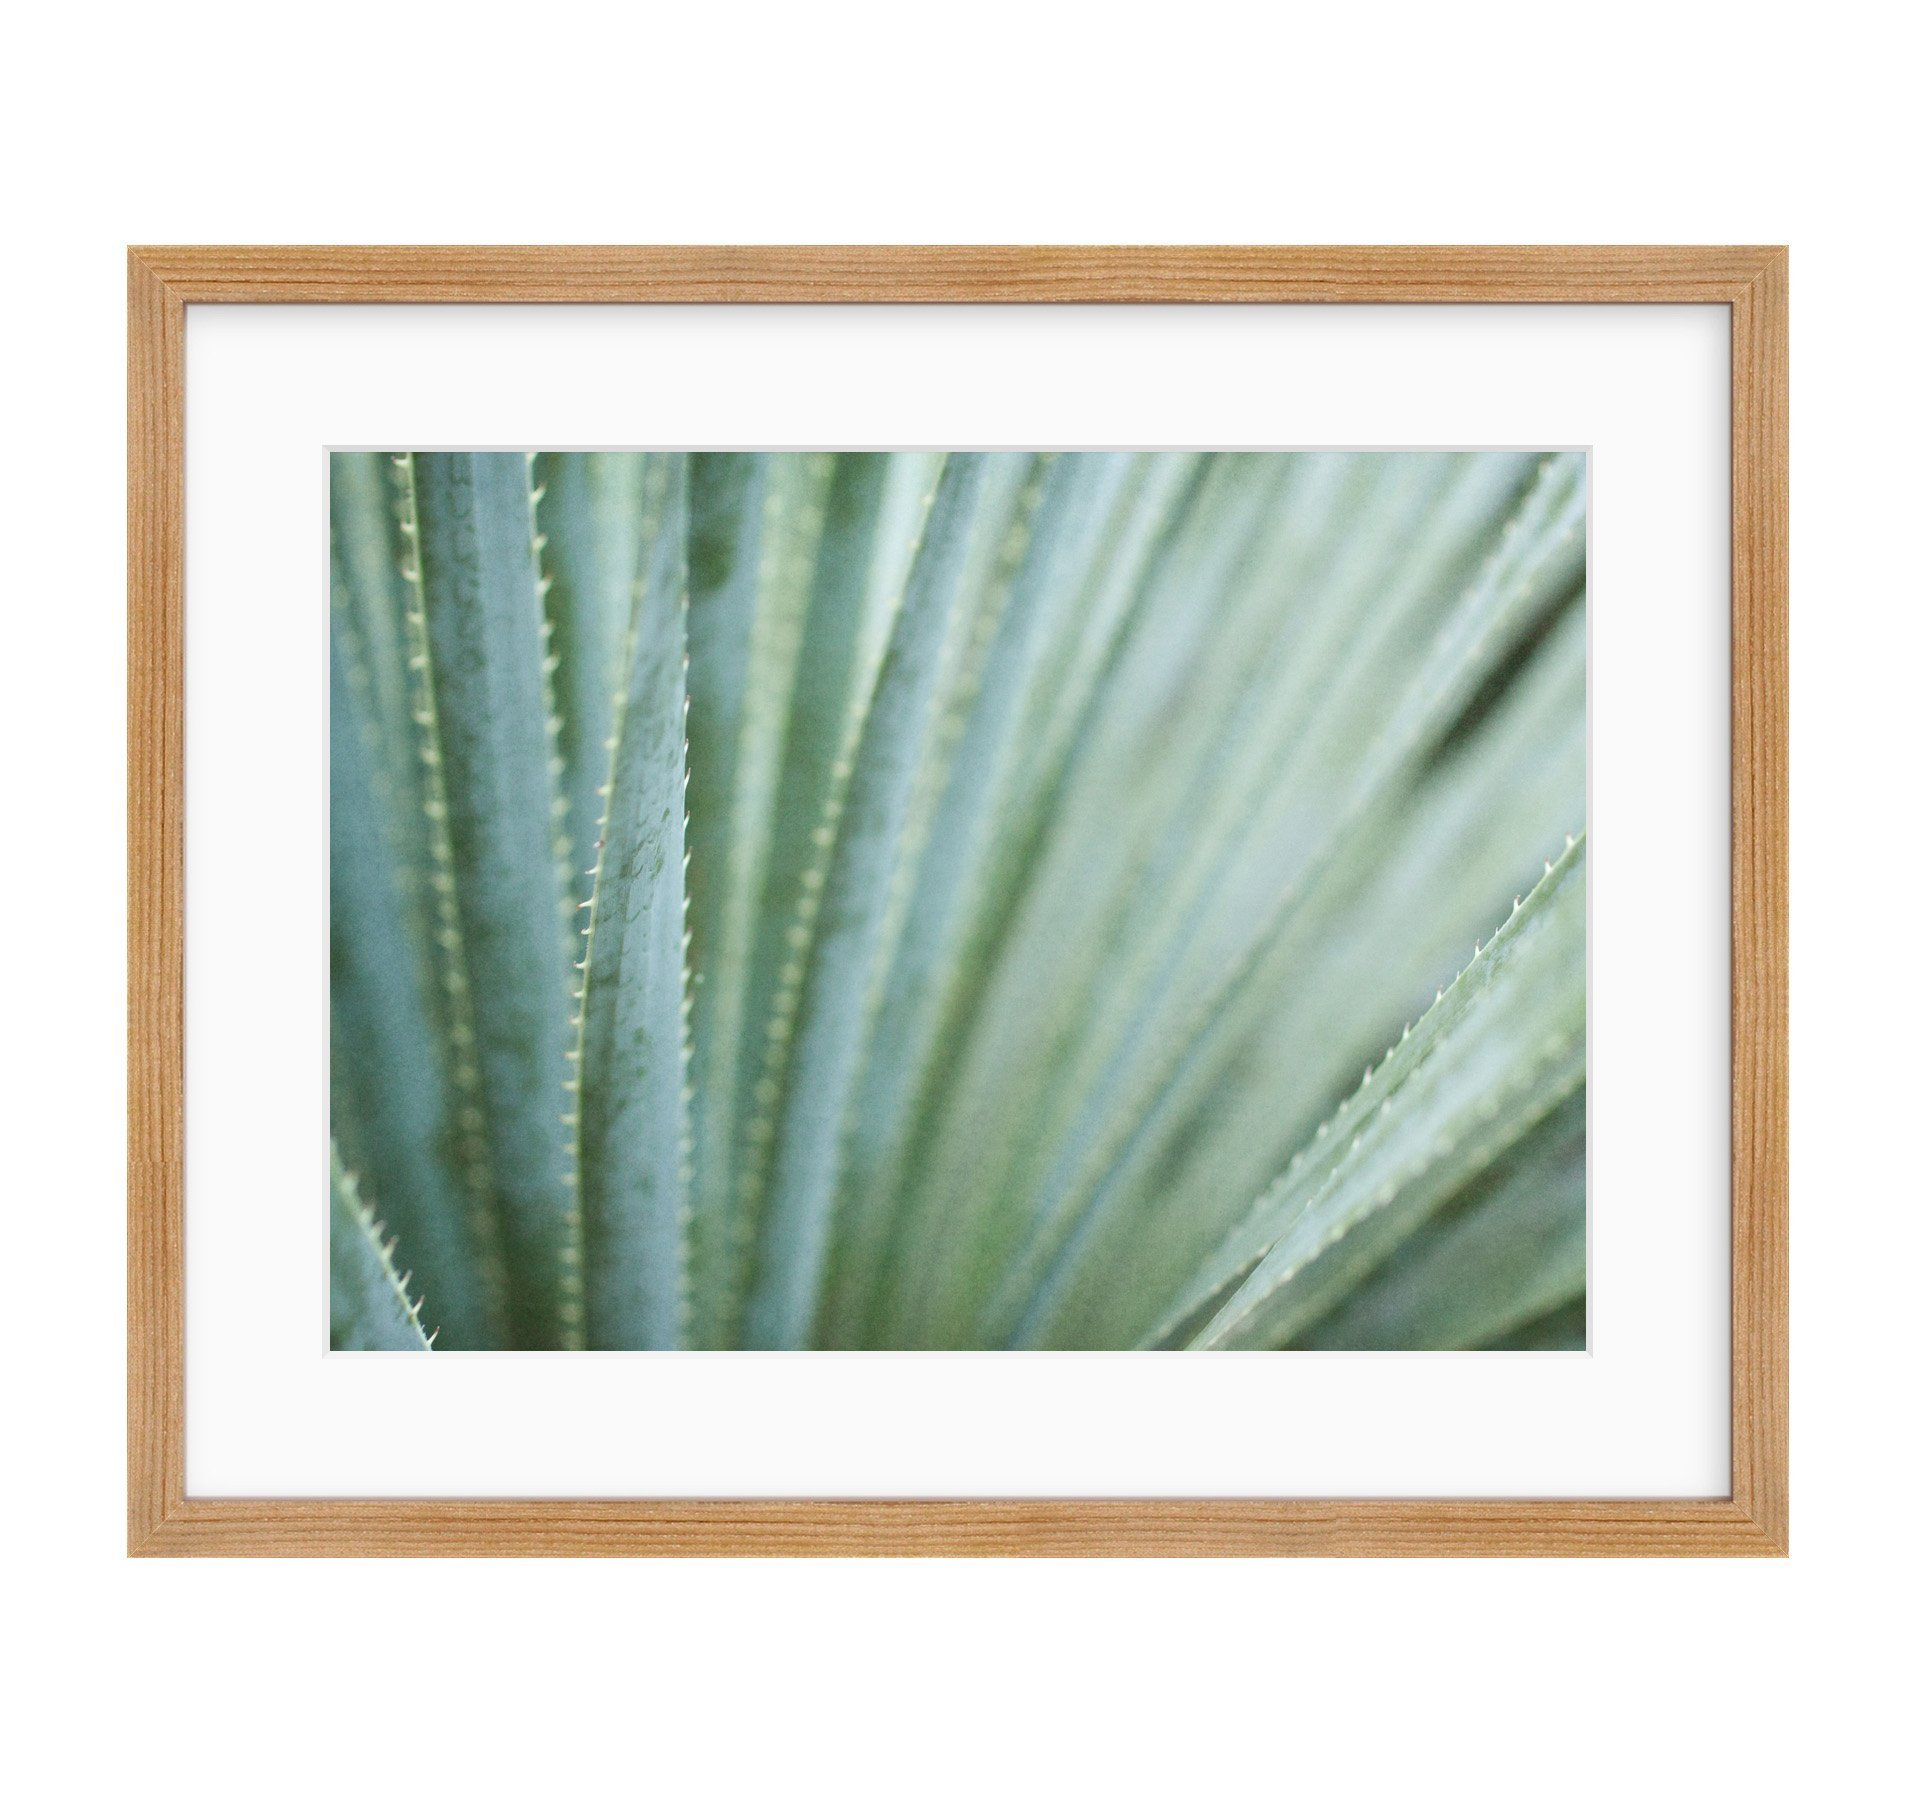 Framed Photographic Print, Abstract Green Botanical Wall Art, Modern Contemporary Wall Decor, Strands and Spikes'